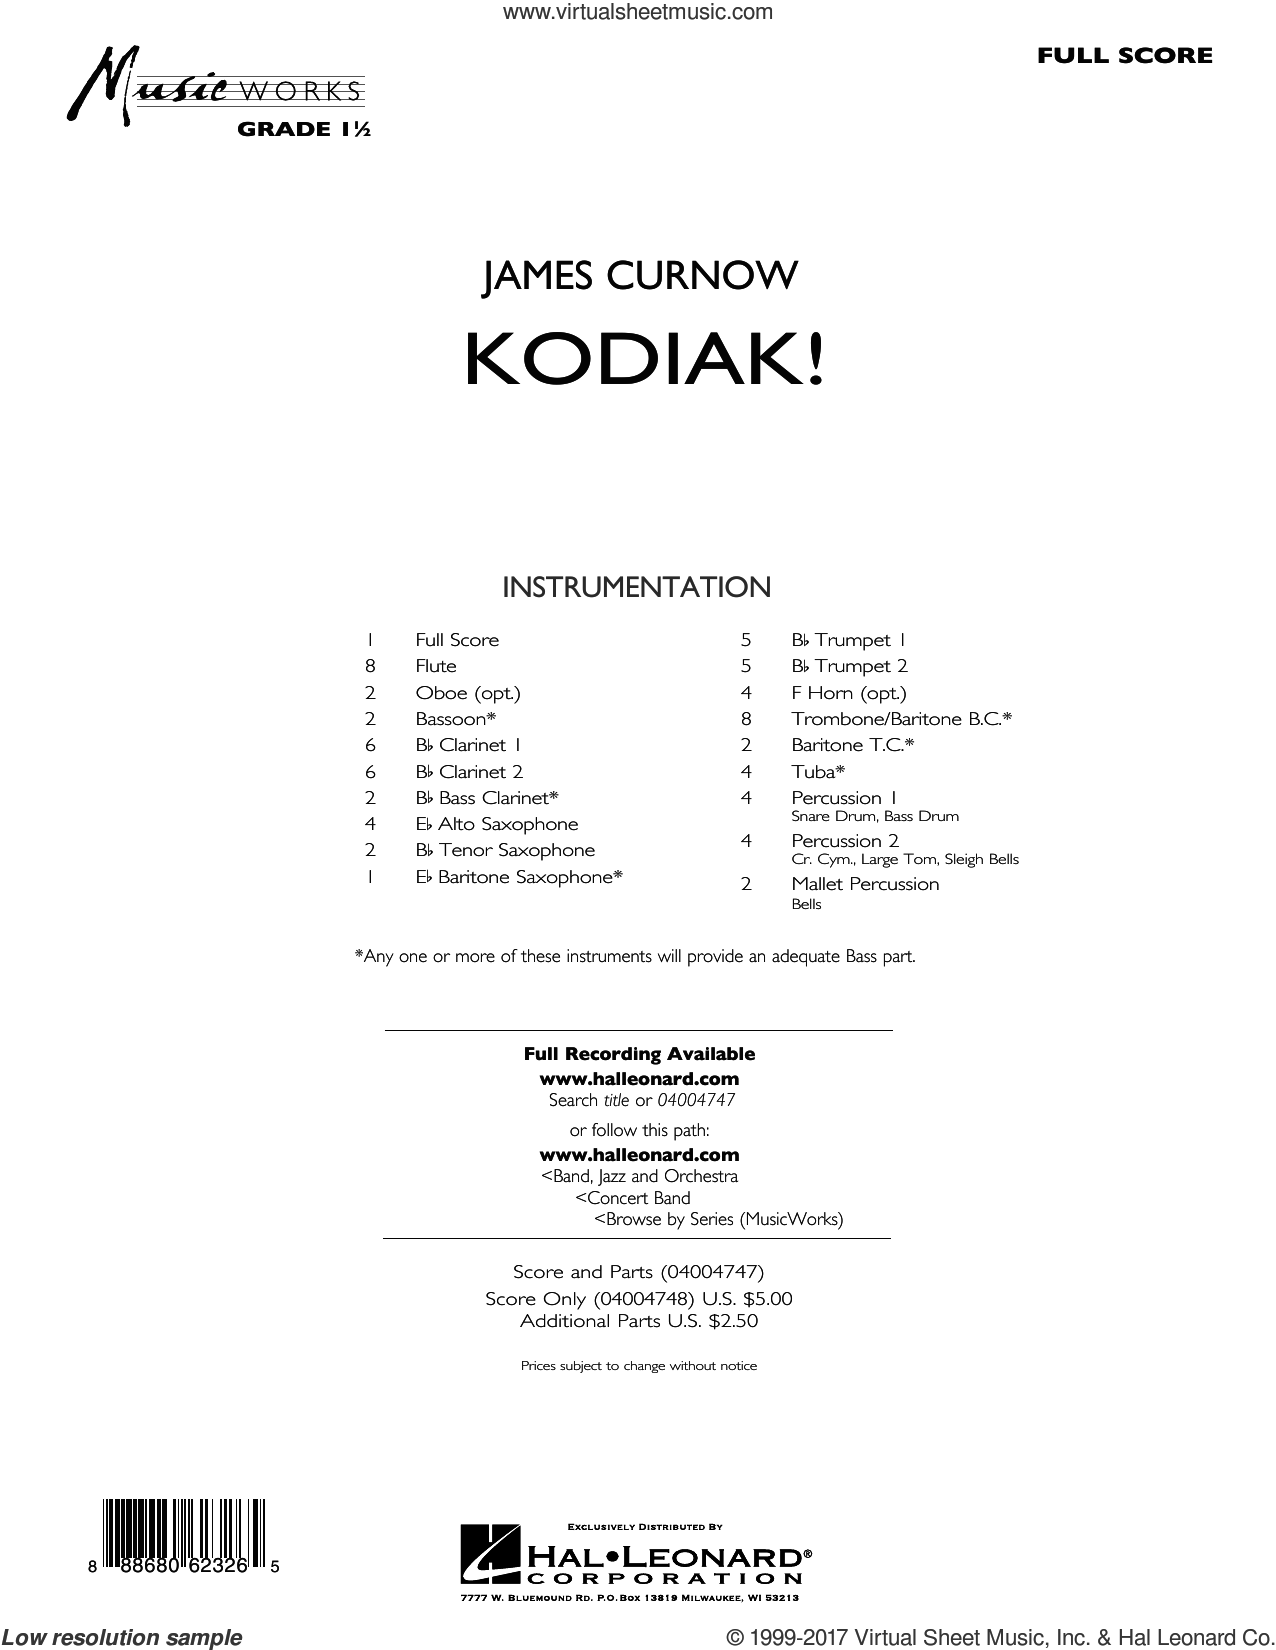 Kodiak! (COMPLETE) sheet music for concert band by James Curnow, intermediate